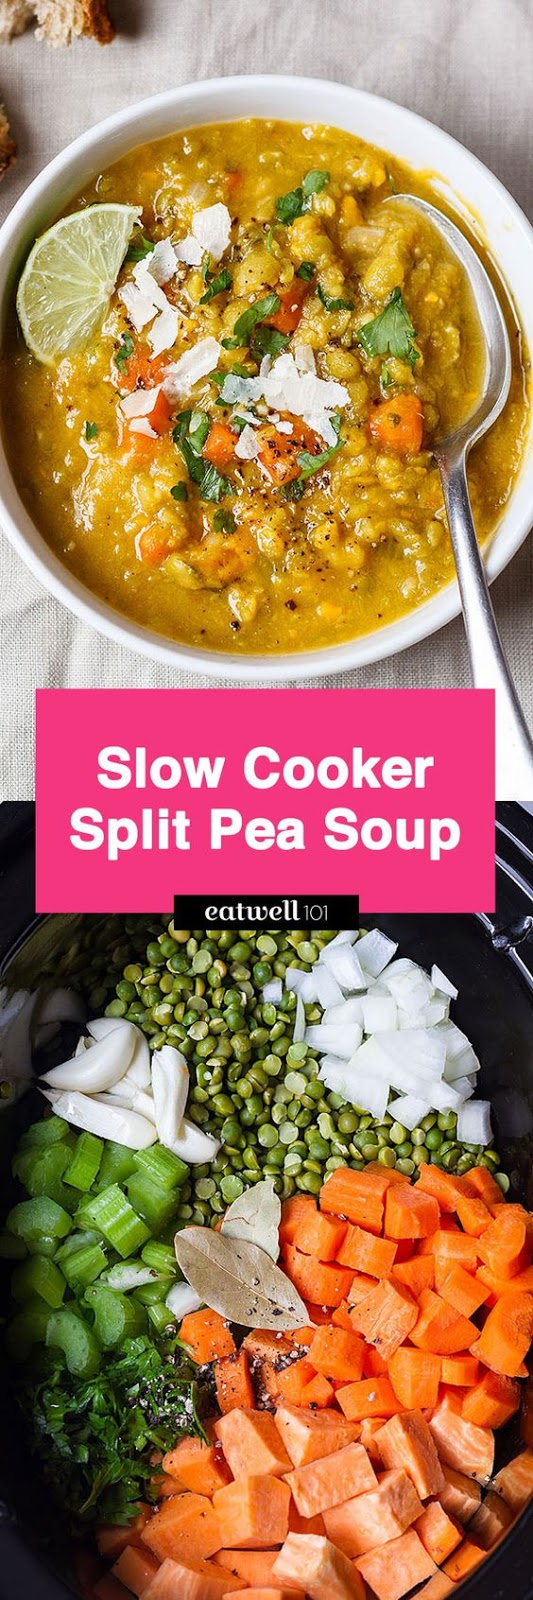 Slow Cooker Sweet Potato Split Pea Soup